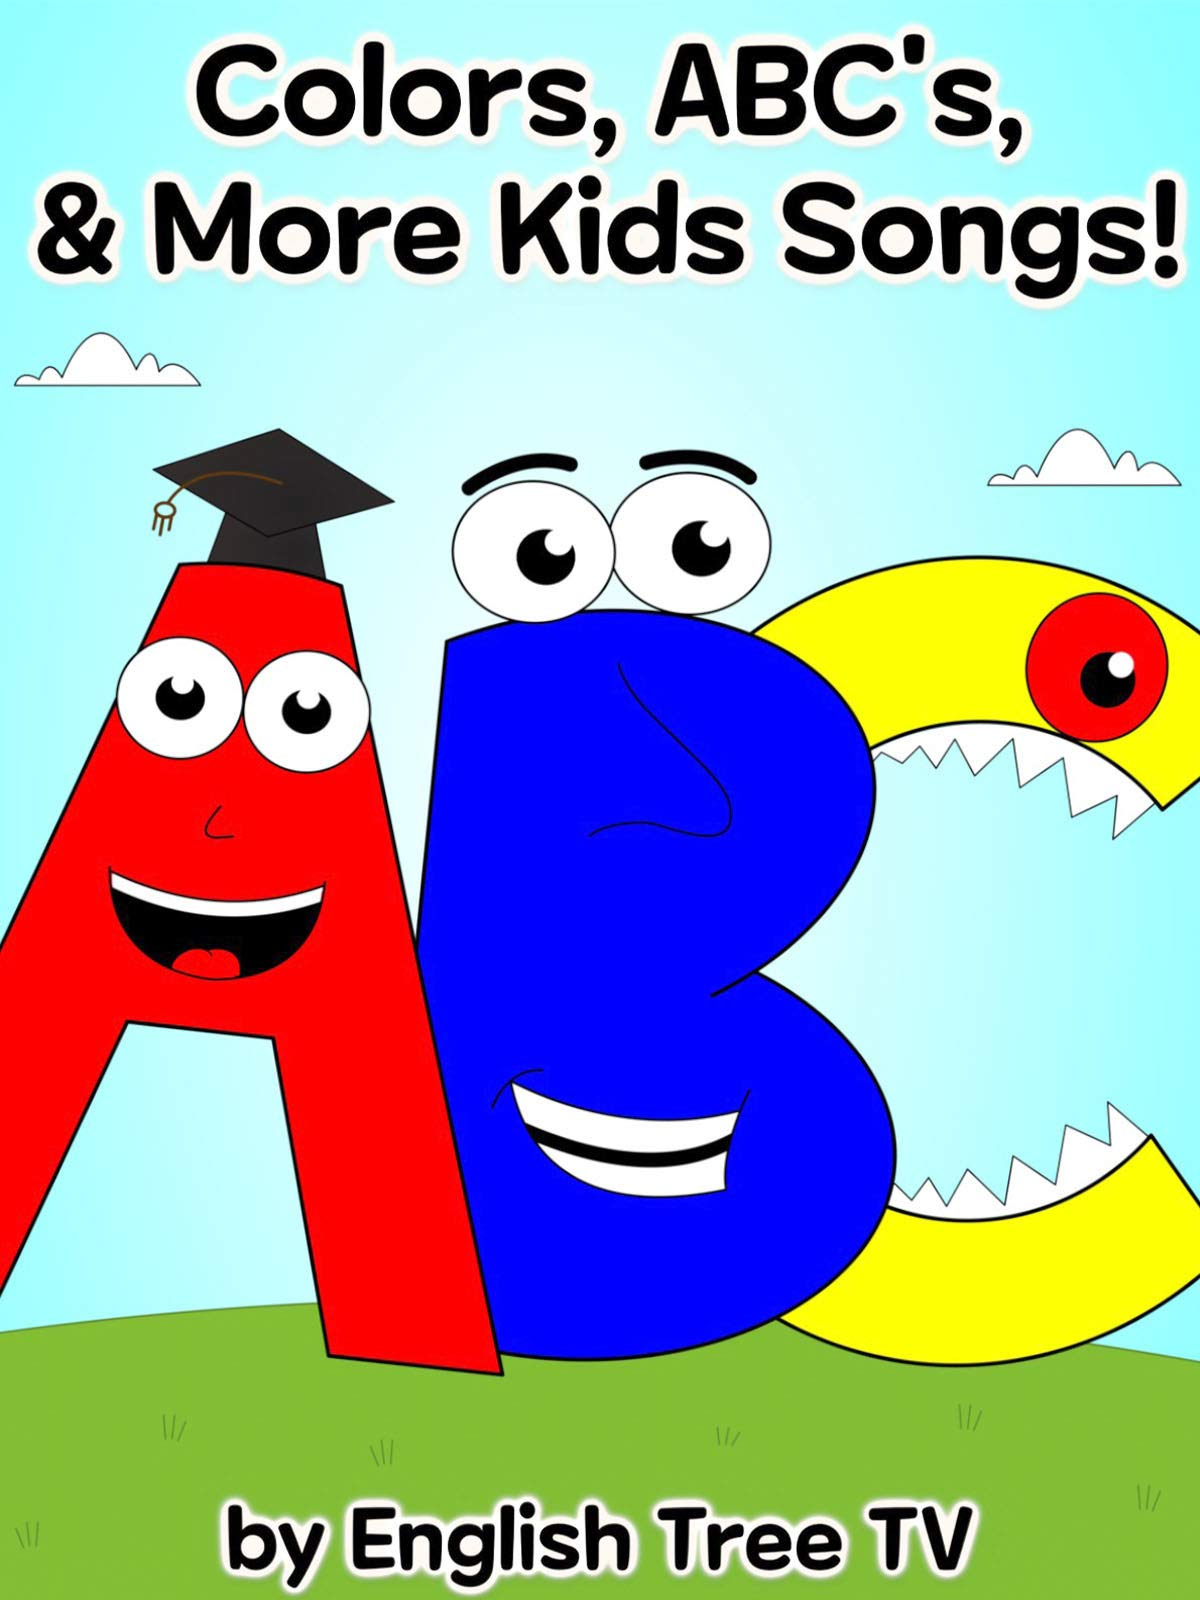 Colors, ABC's  & More Kids Songs! by English Tree TV